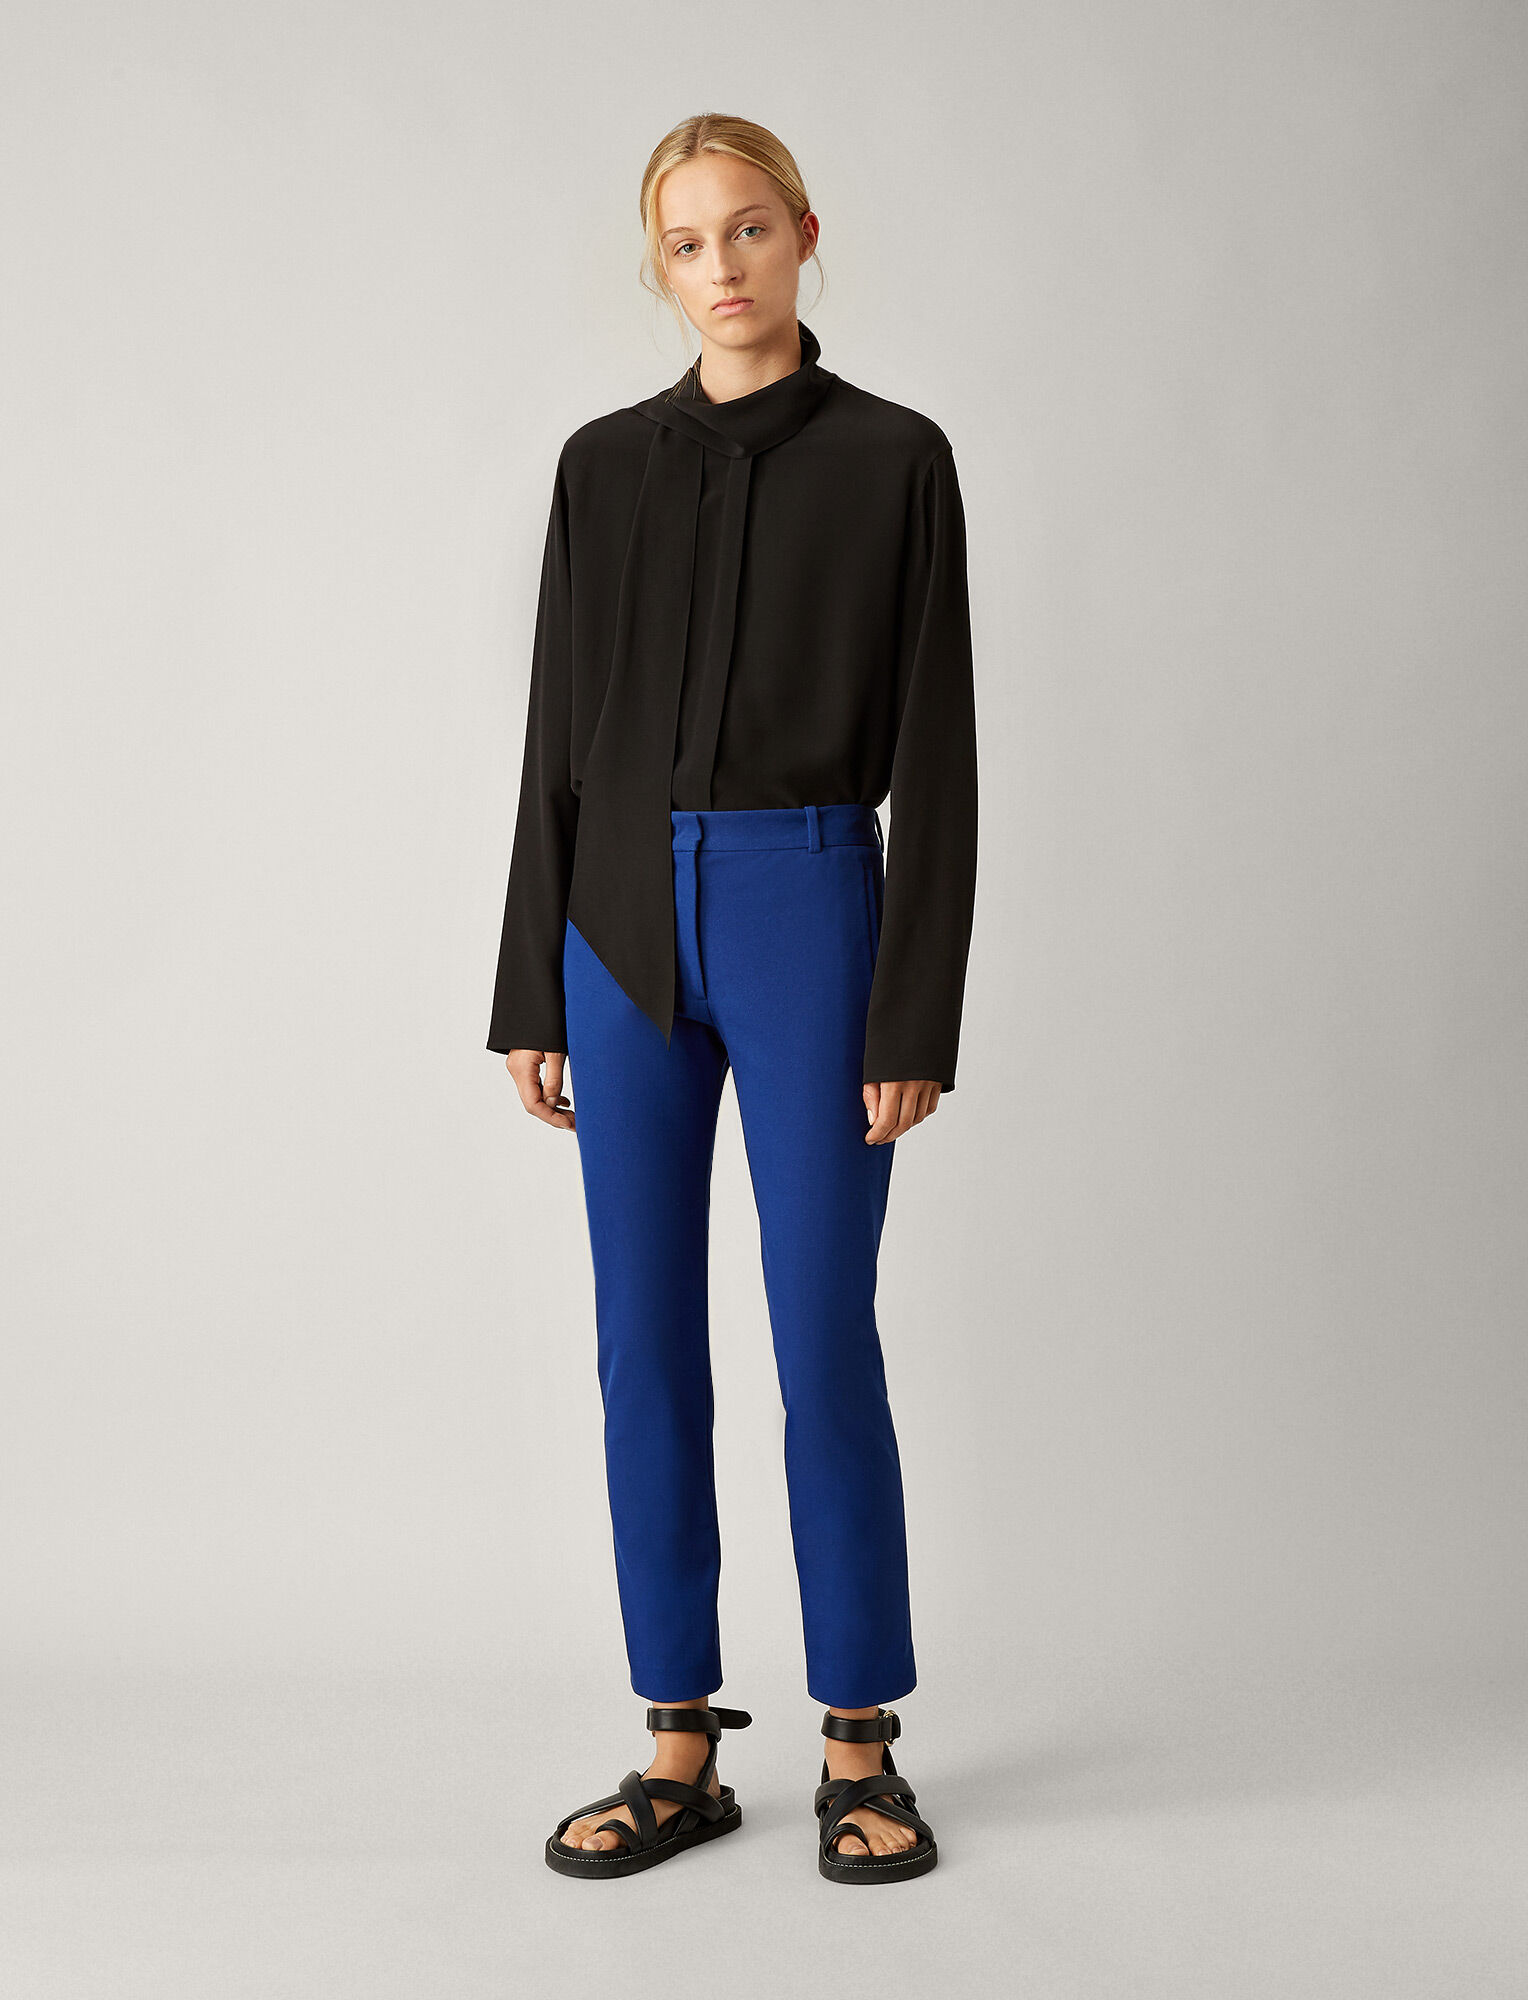 Joseph, New Elliston Gabardine Stretch Trousers, in KLEIN